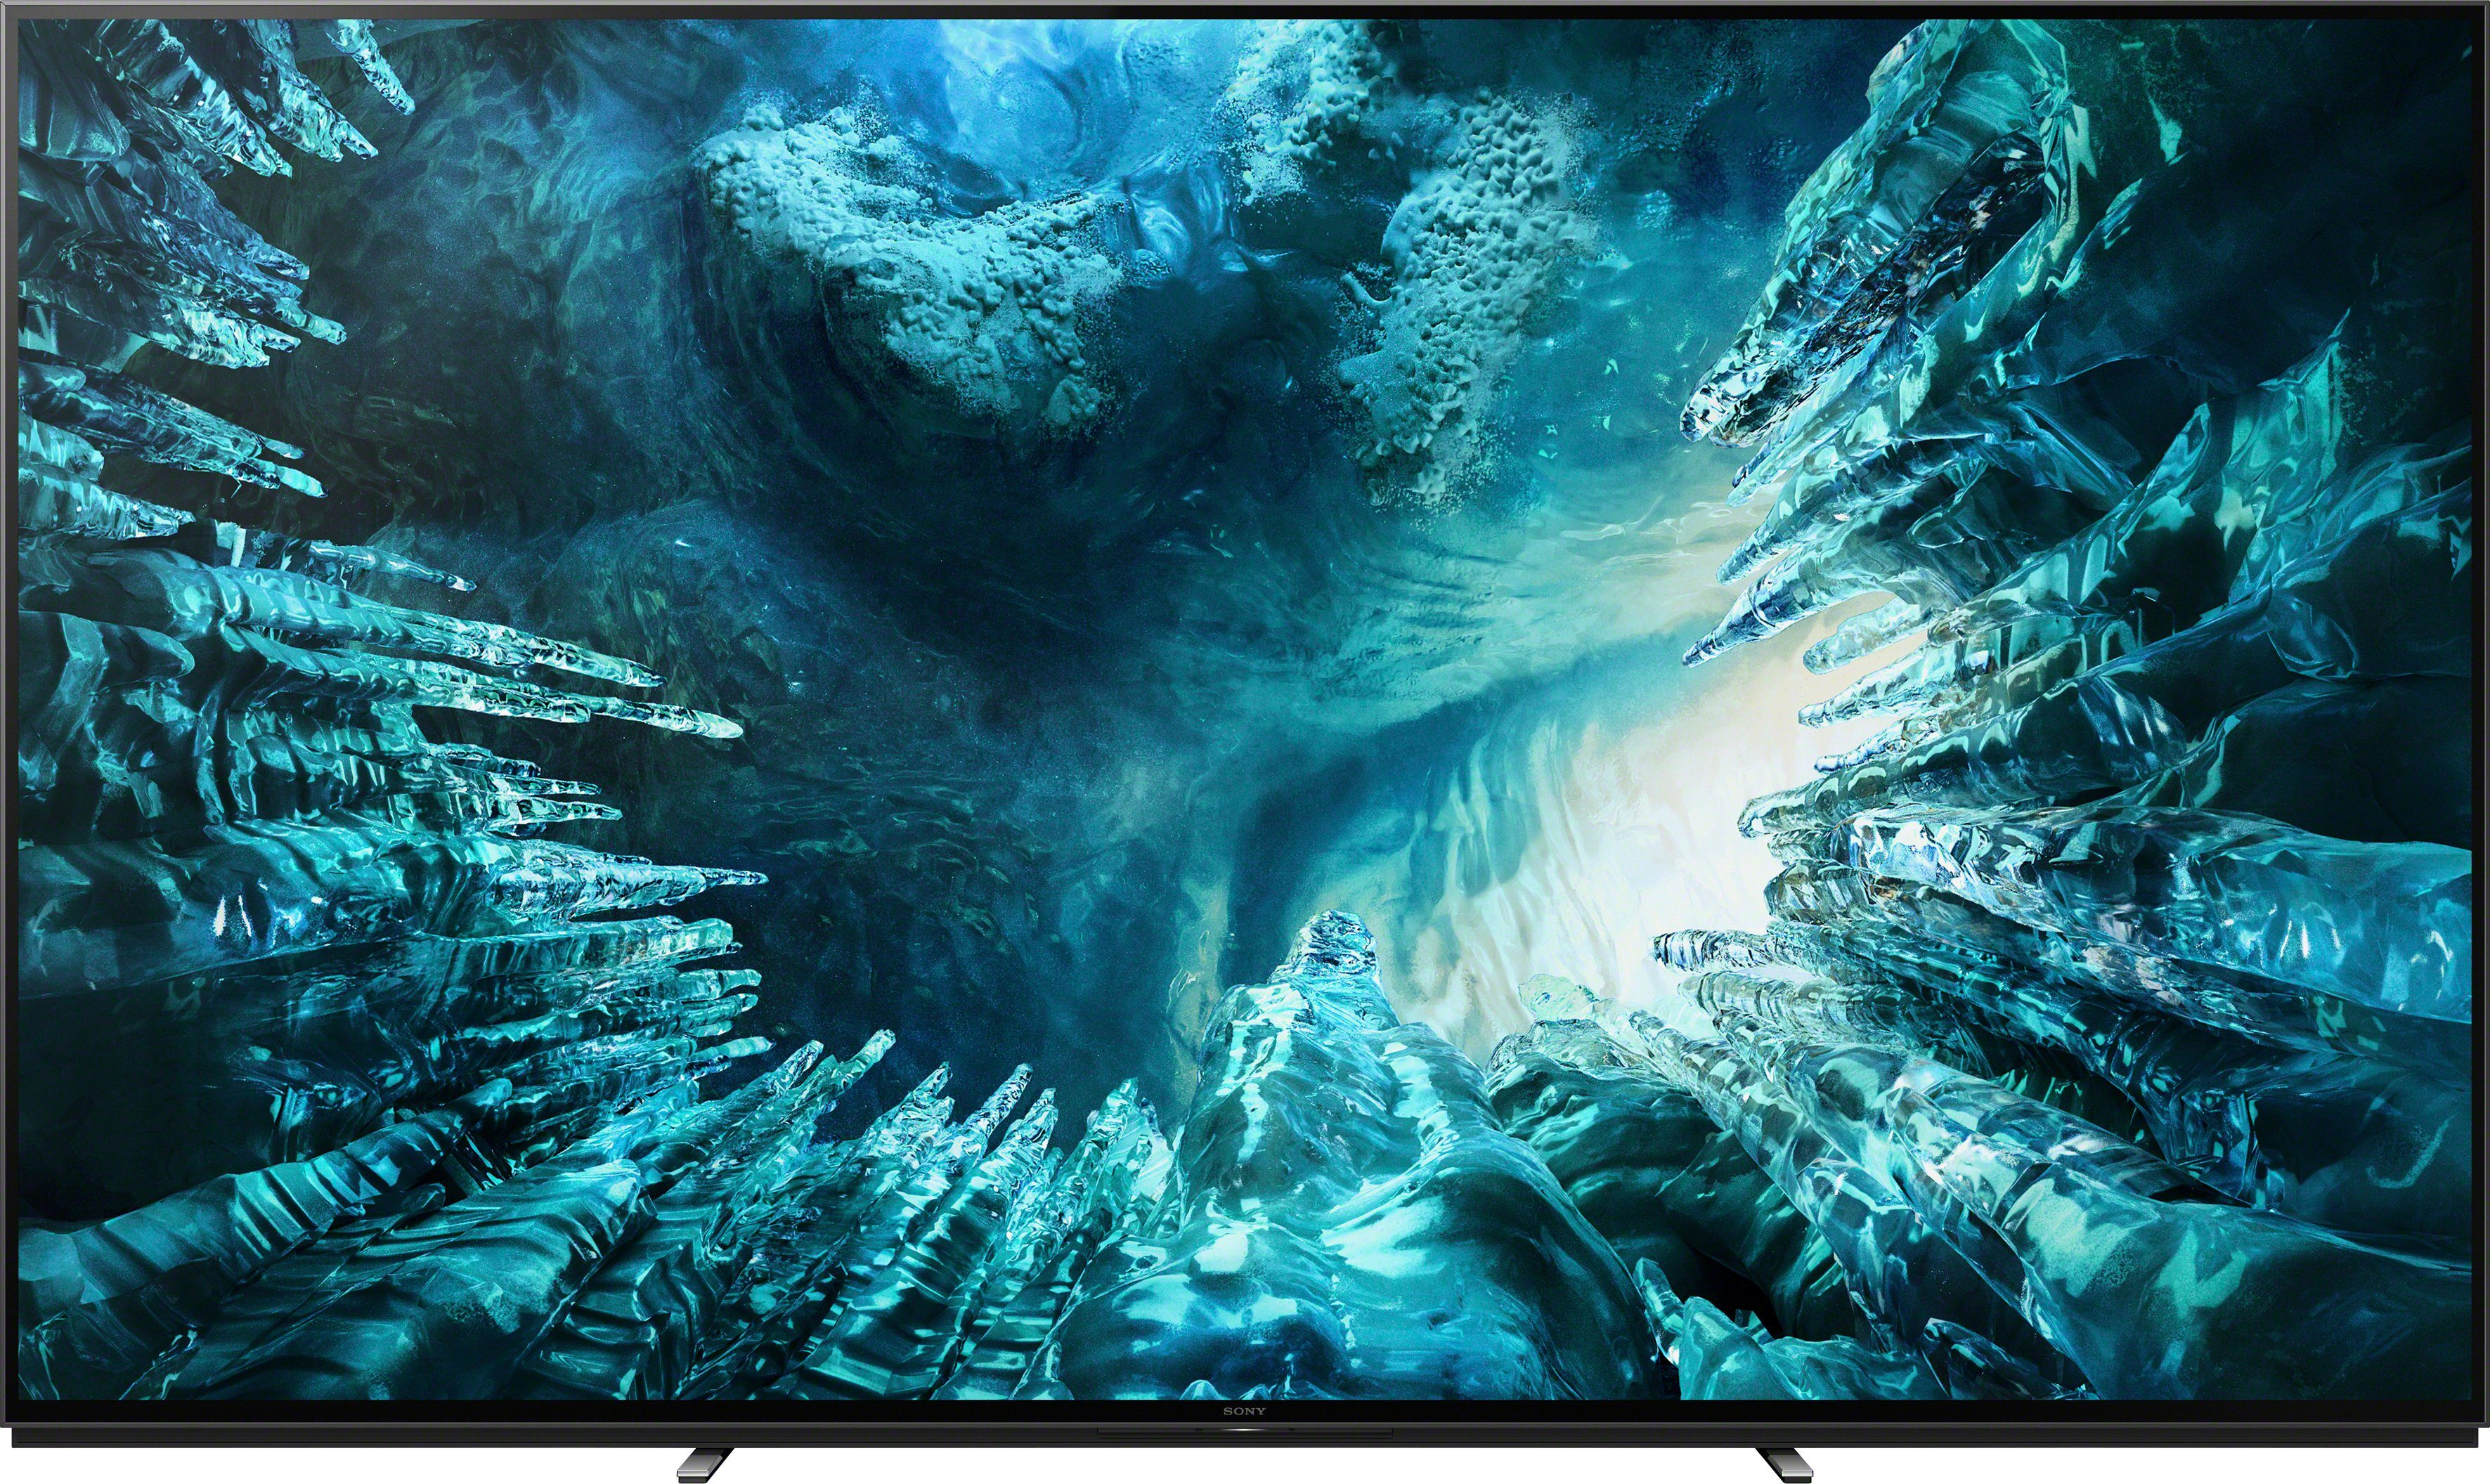 8K Images . Sony Kd 75zh8 Lcd Led Fernseher 189 Cm 75 Zoll 8k Android Tv Smart Tv Online Kaufen Otto